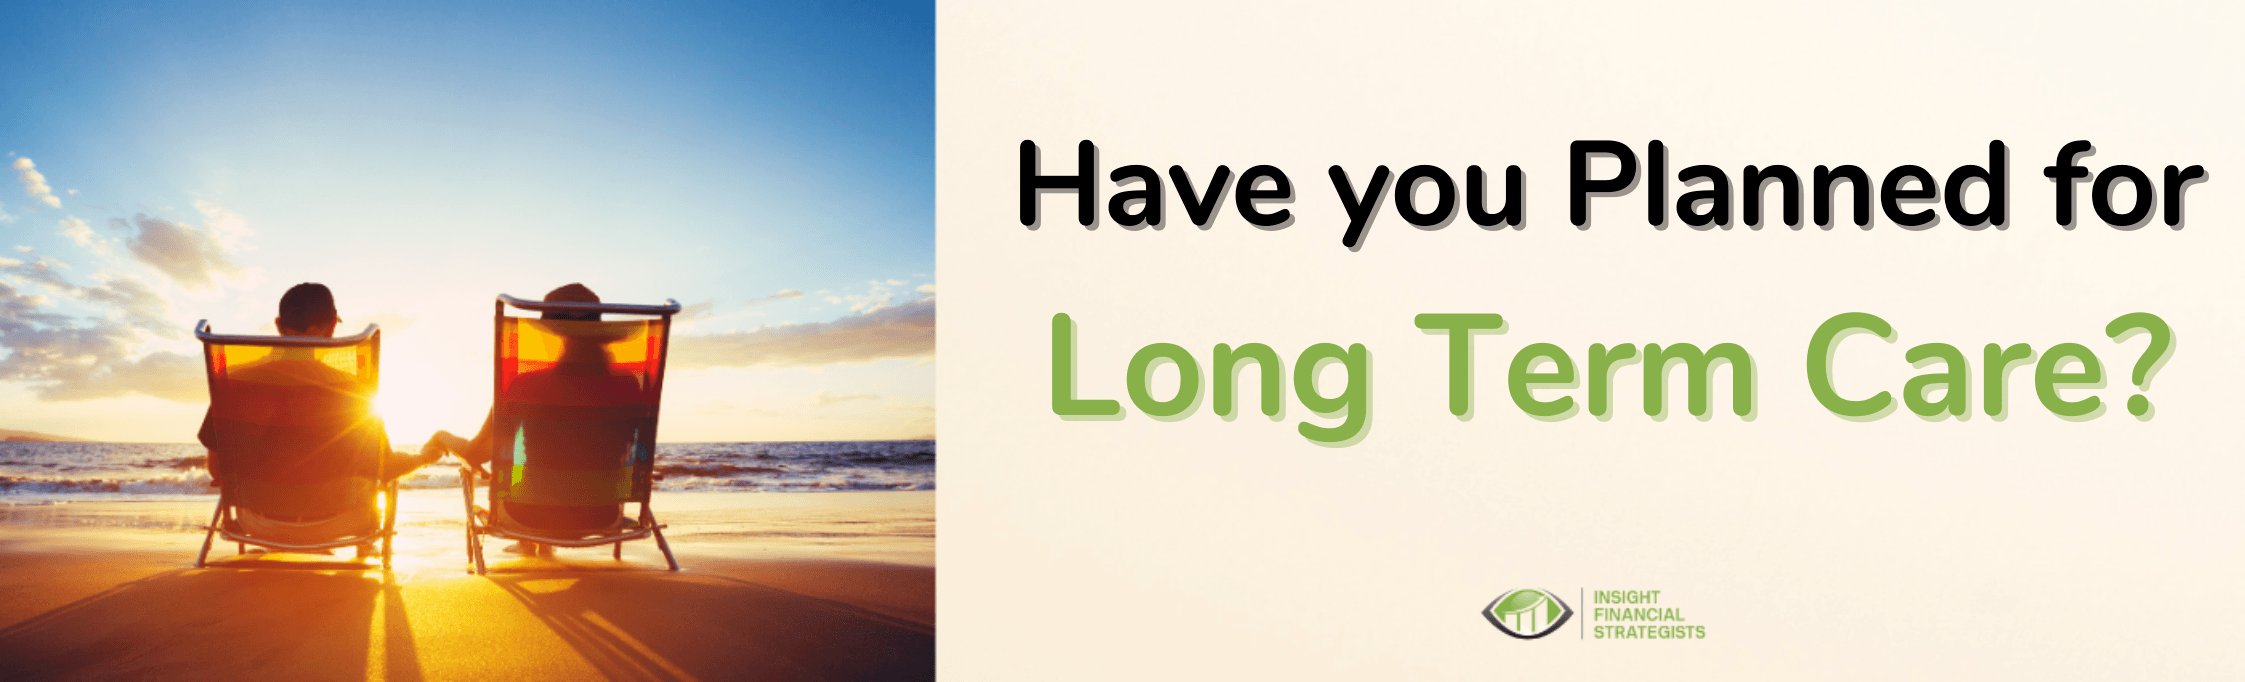 Have You Planned For long Term Care?